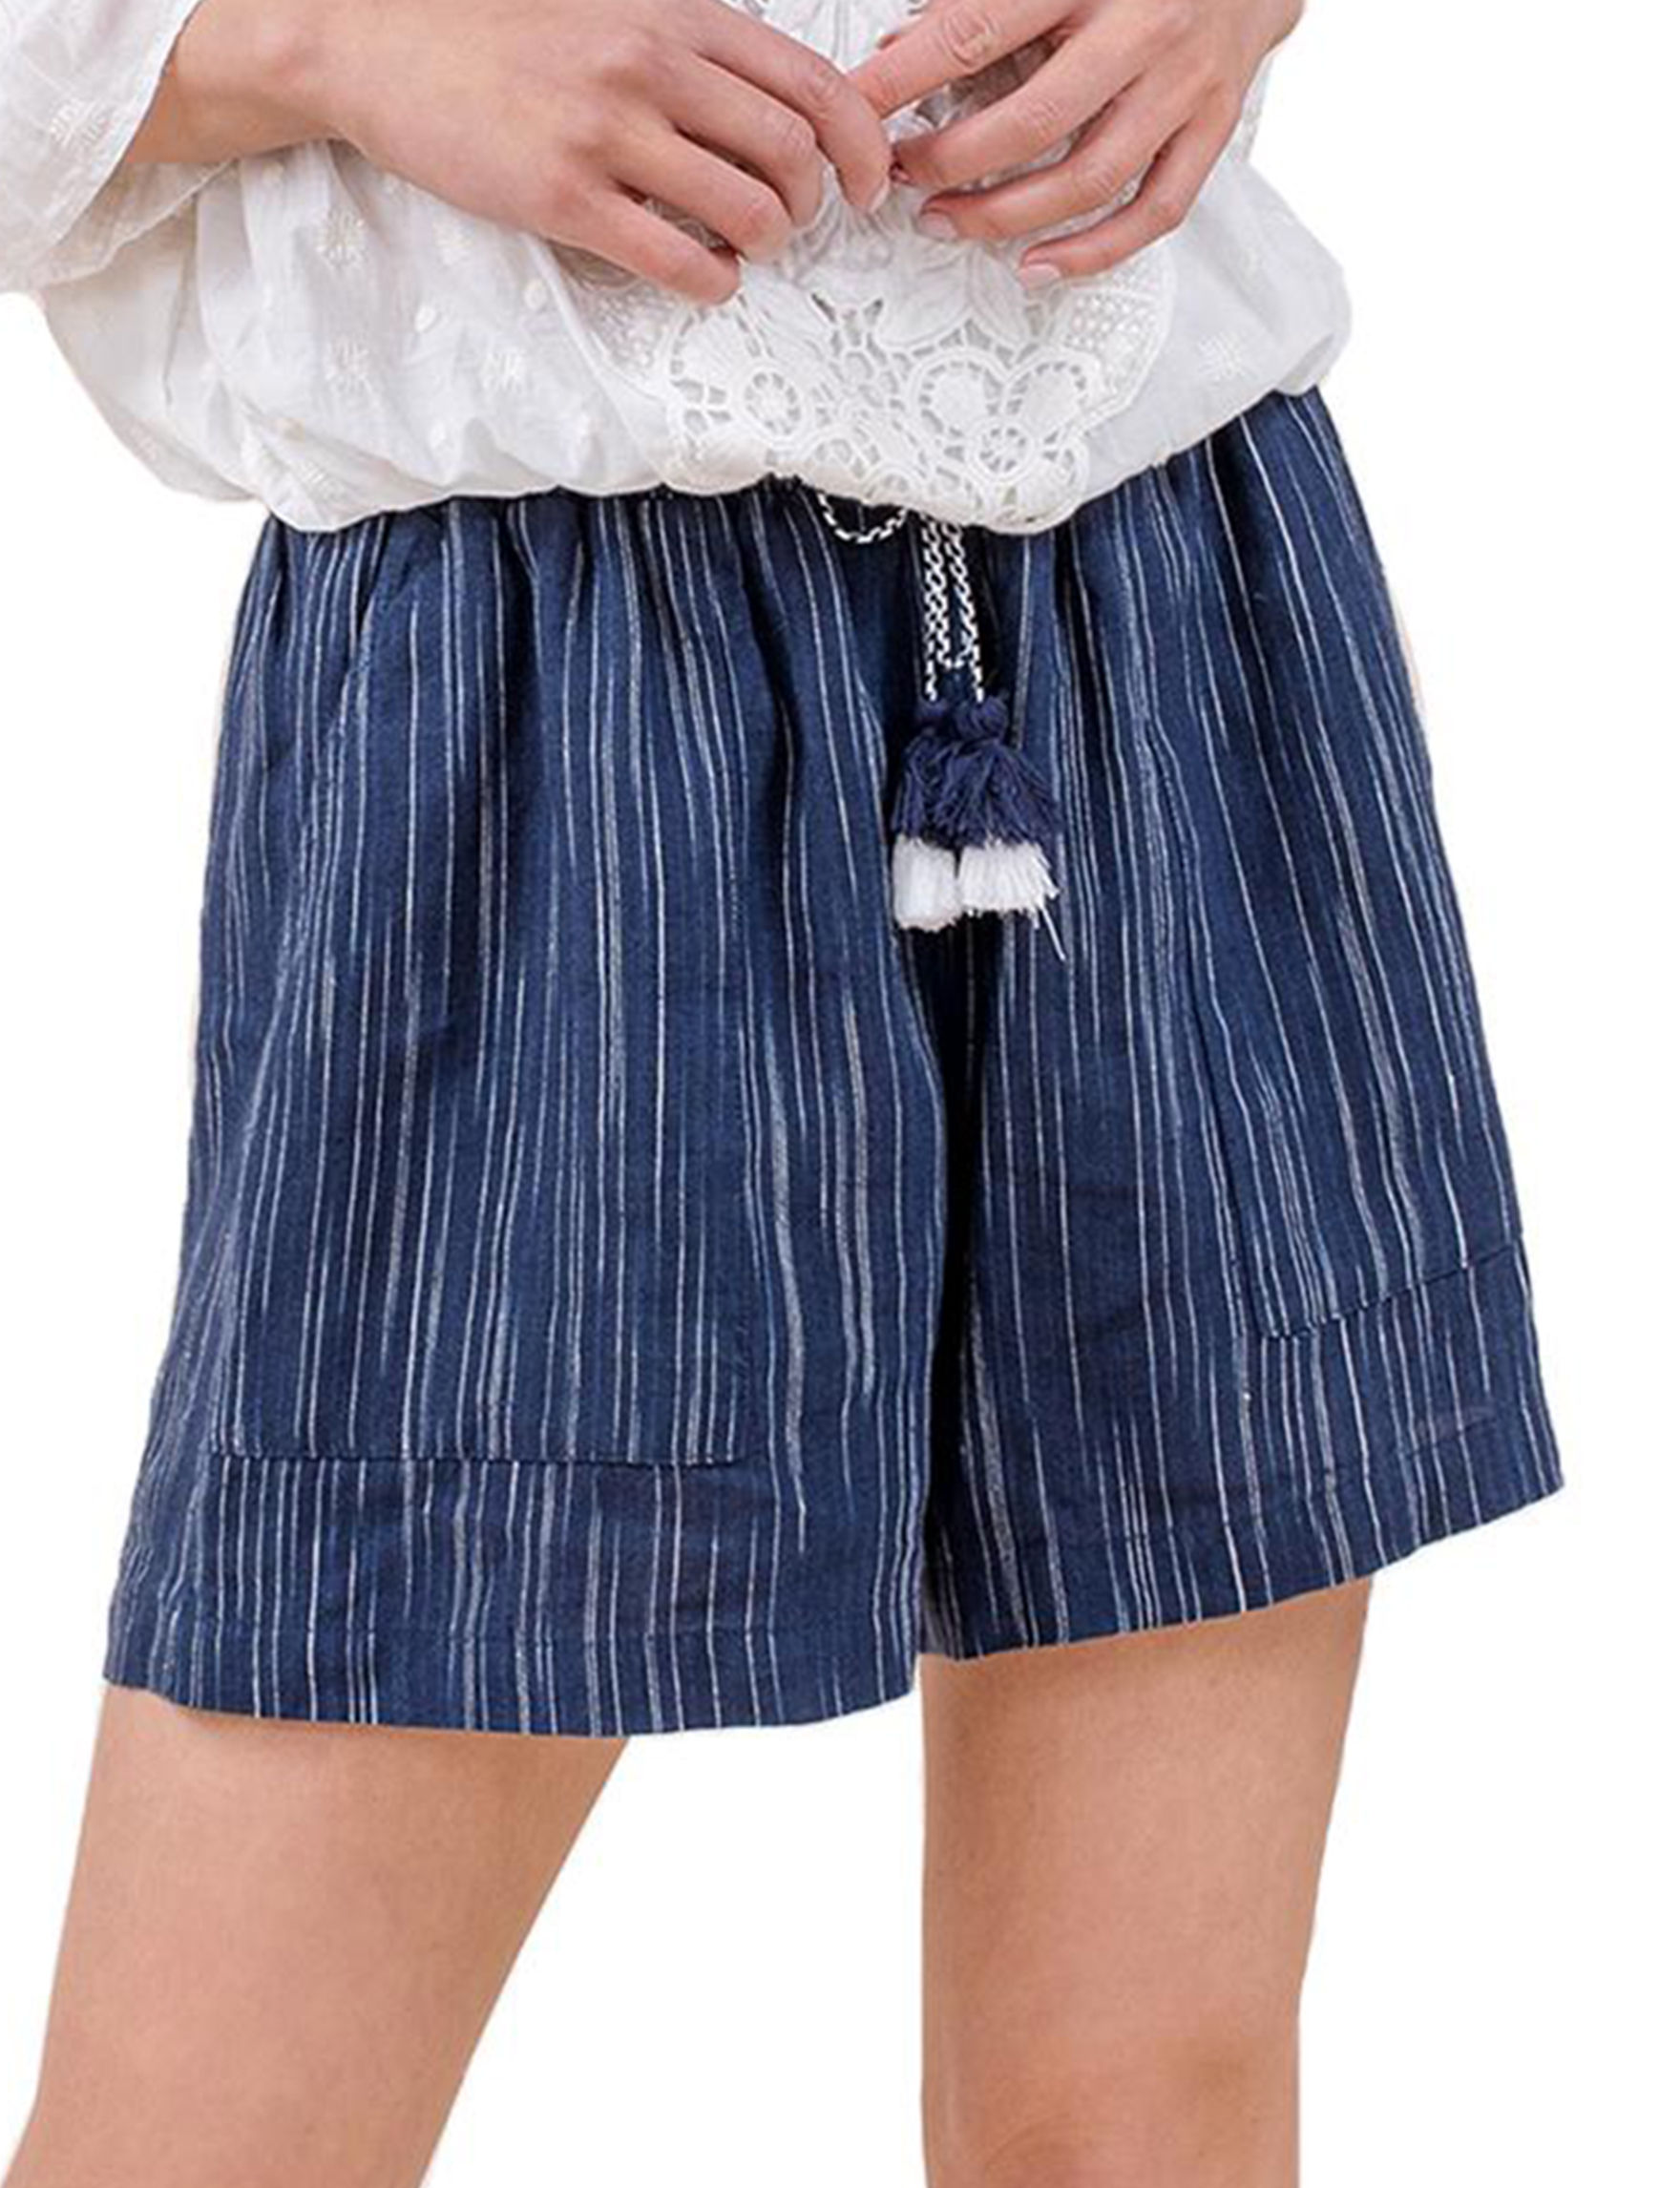 C + J Collections Navy Soft Shorts